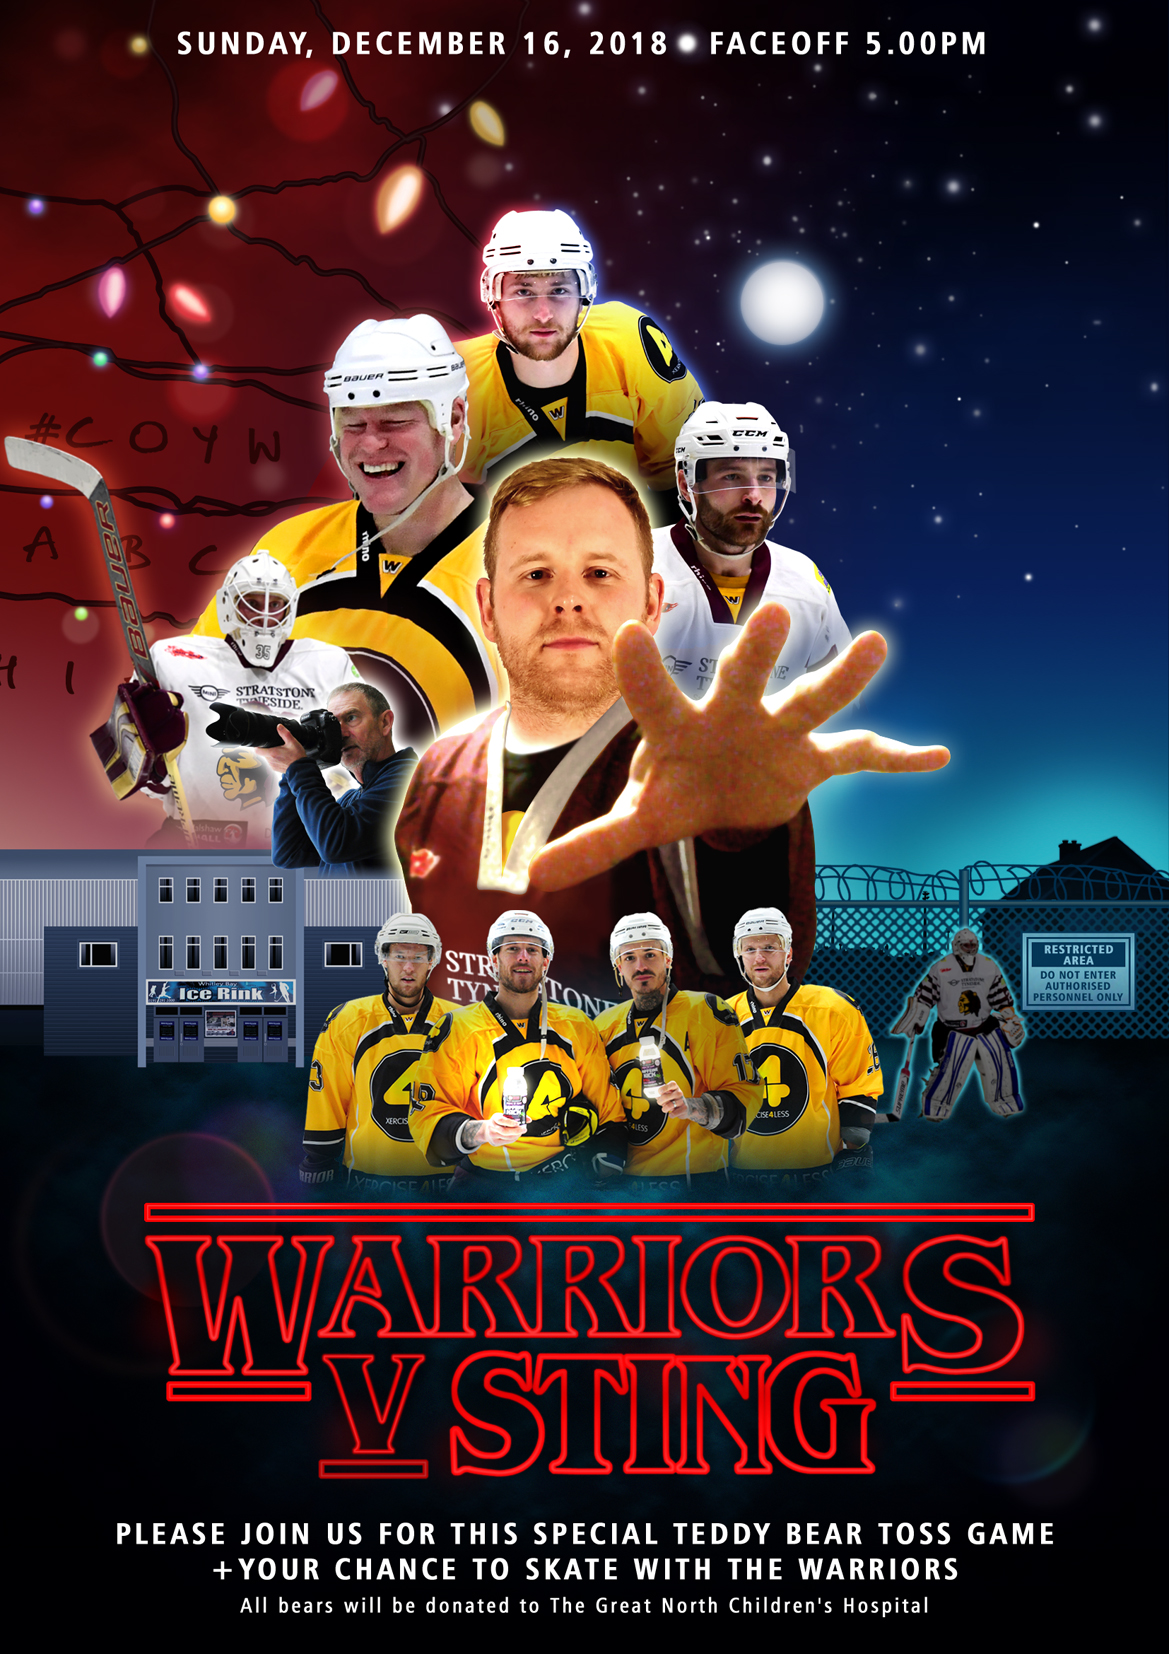 Whitley Warriors vs Sutton Sting @ Whitley Bay Ice Rink, Sunday 16 December, face off 5pm